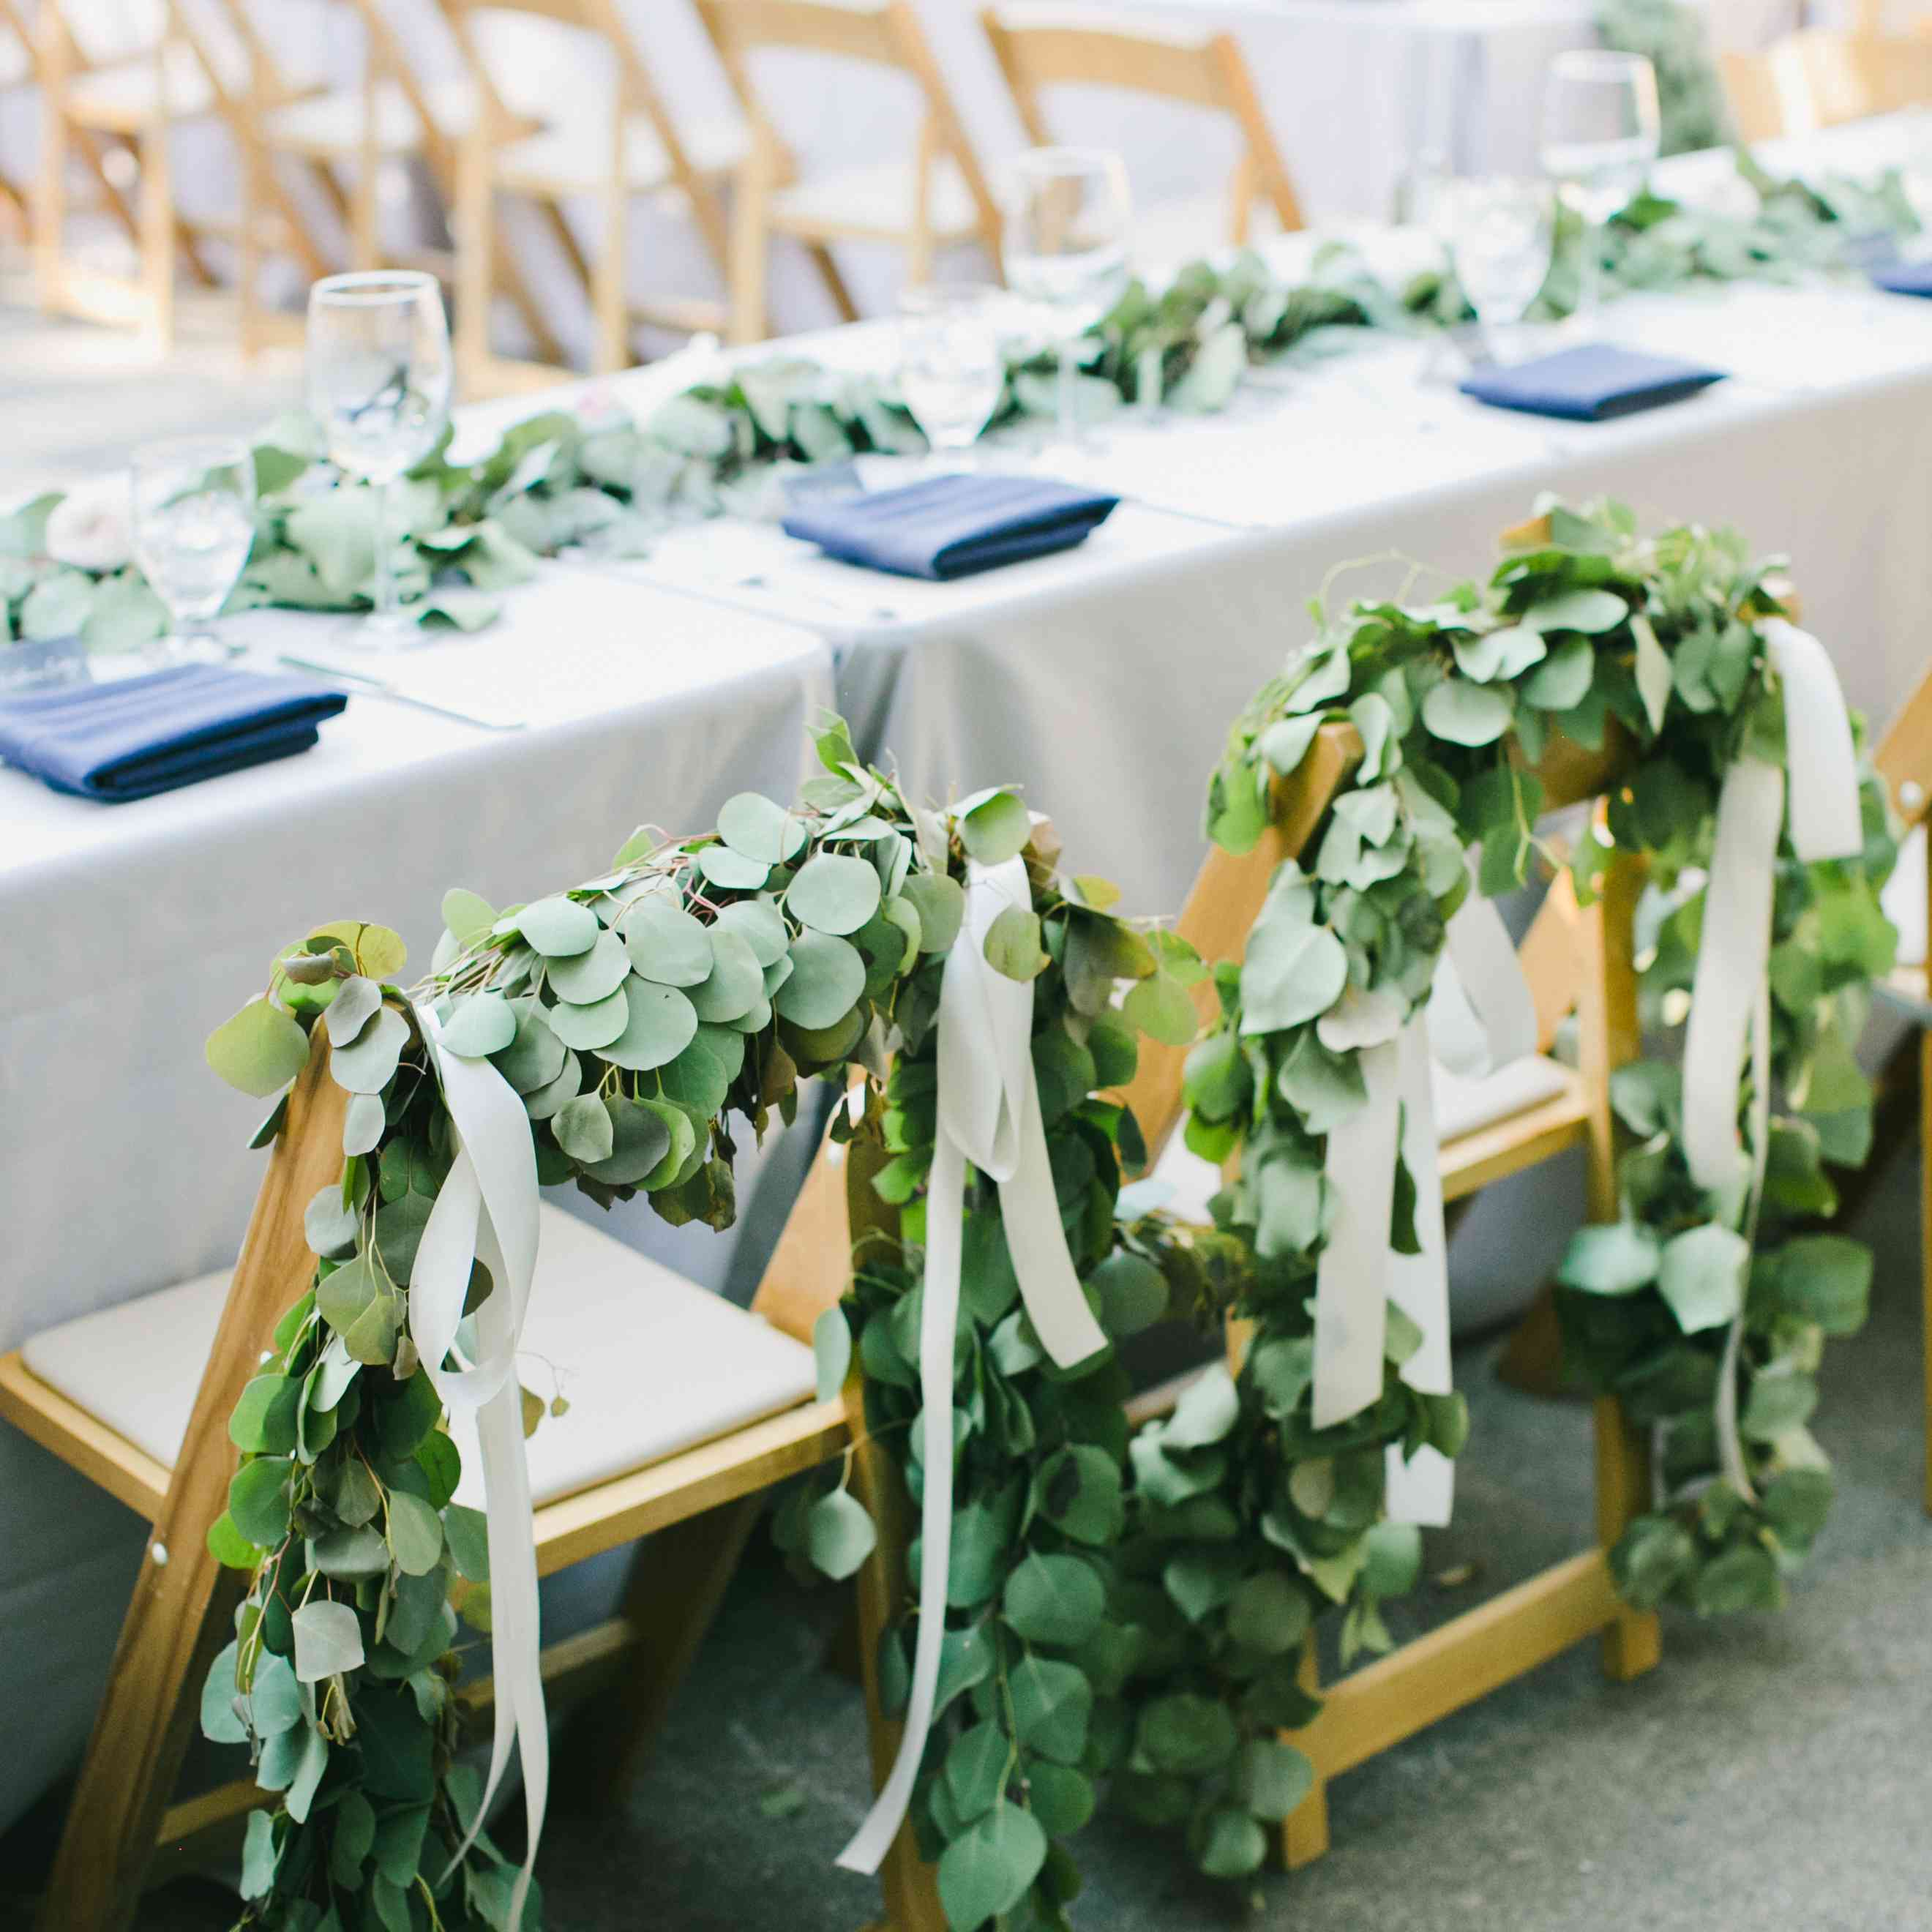 Greenery-accented chairs